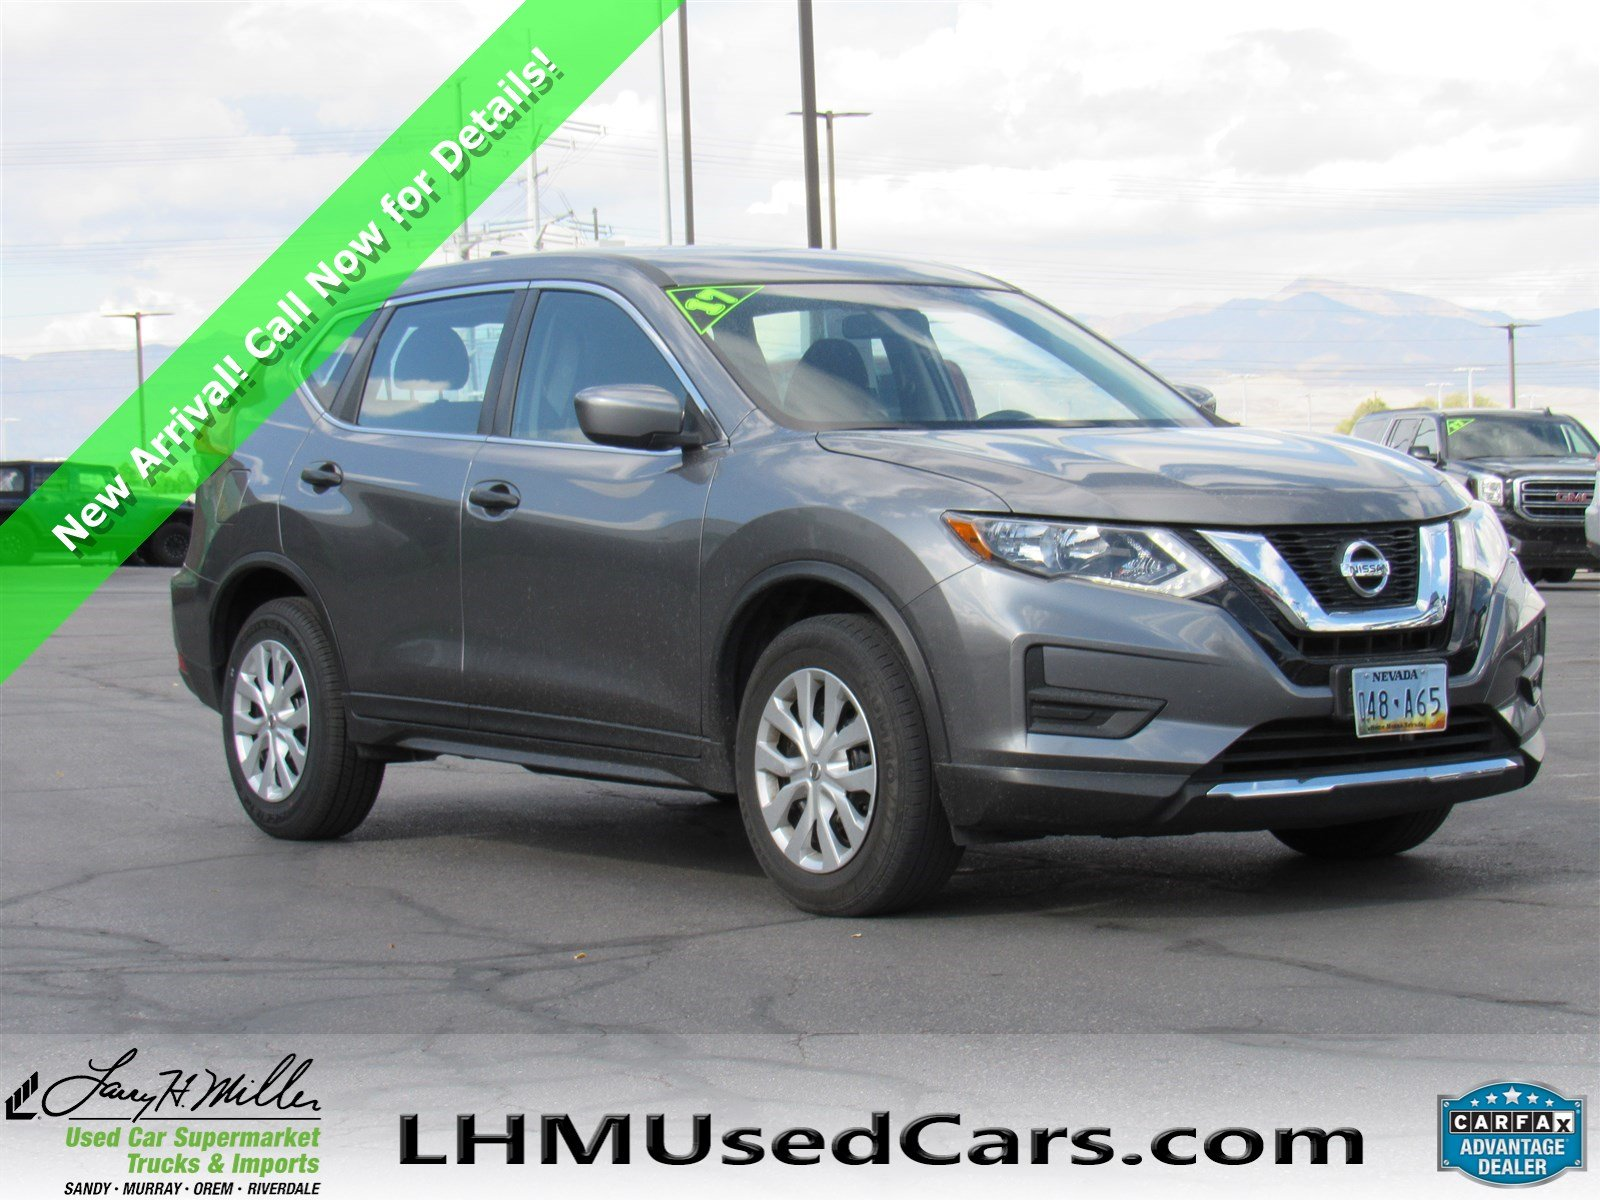 Nissan Rogue Owners Manual: Making a call